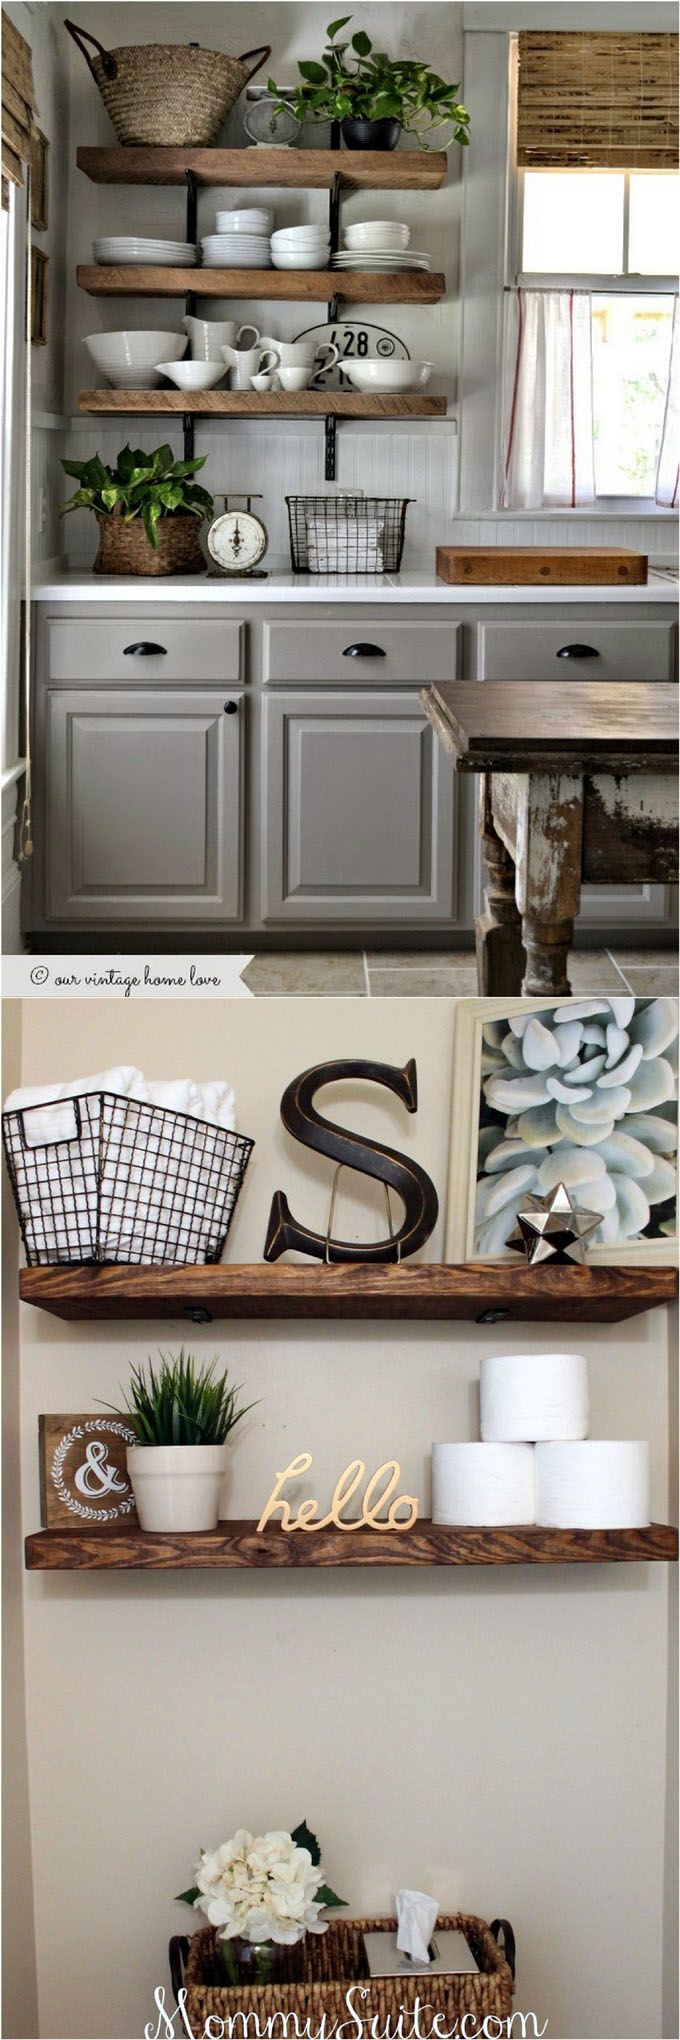 16 easy and stylish diy floating shelves wall shelves hometalk rh pinterest com